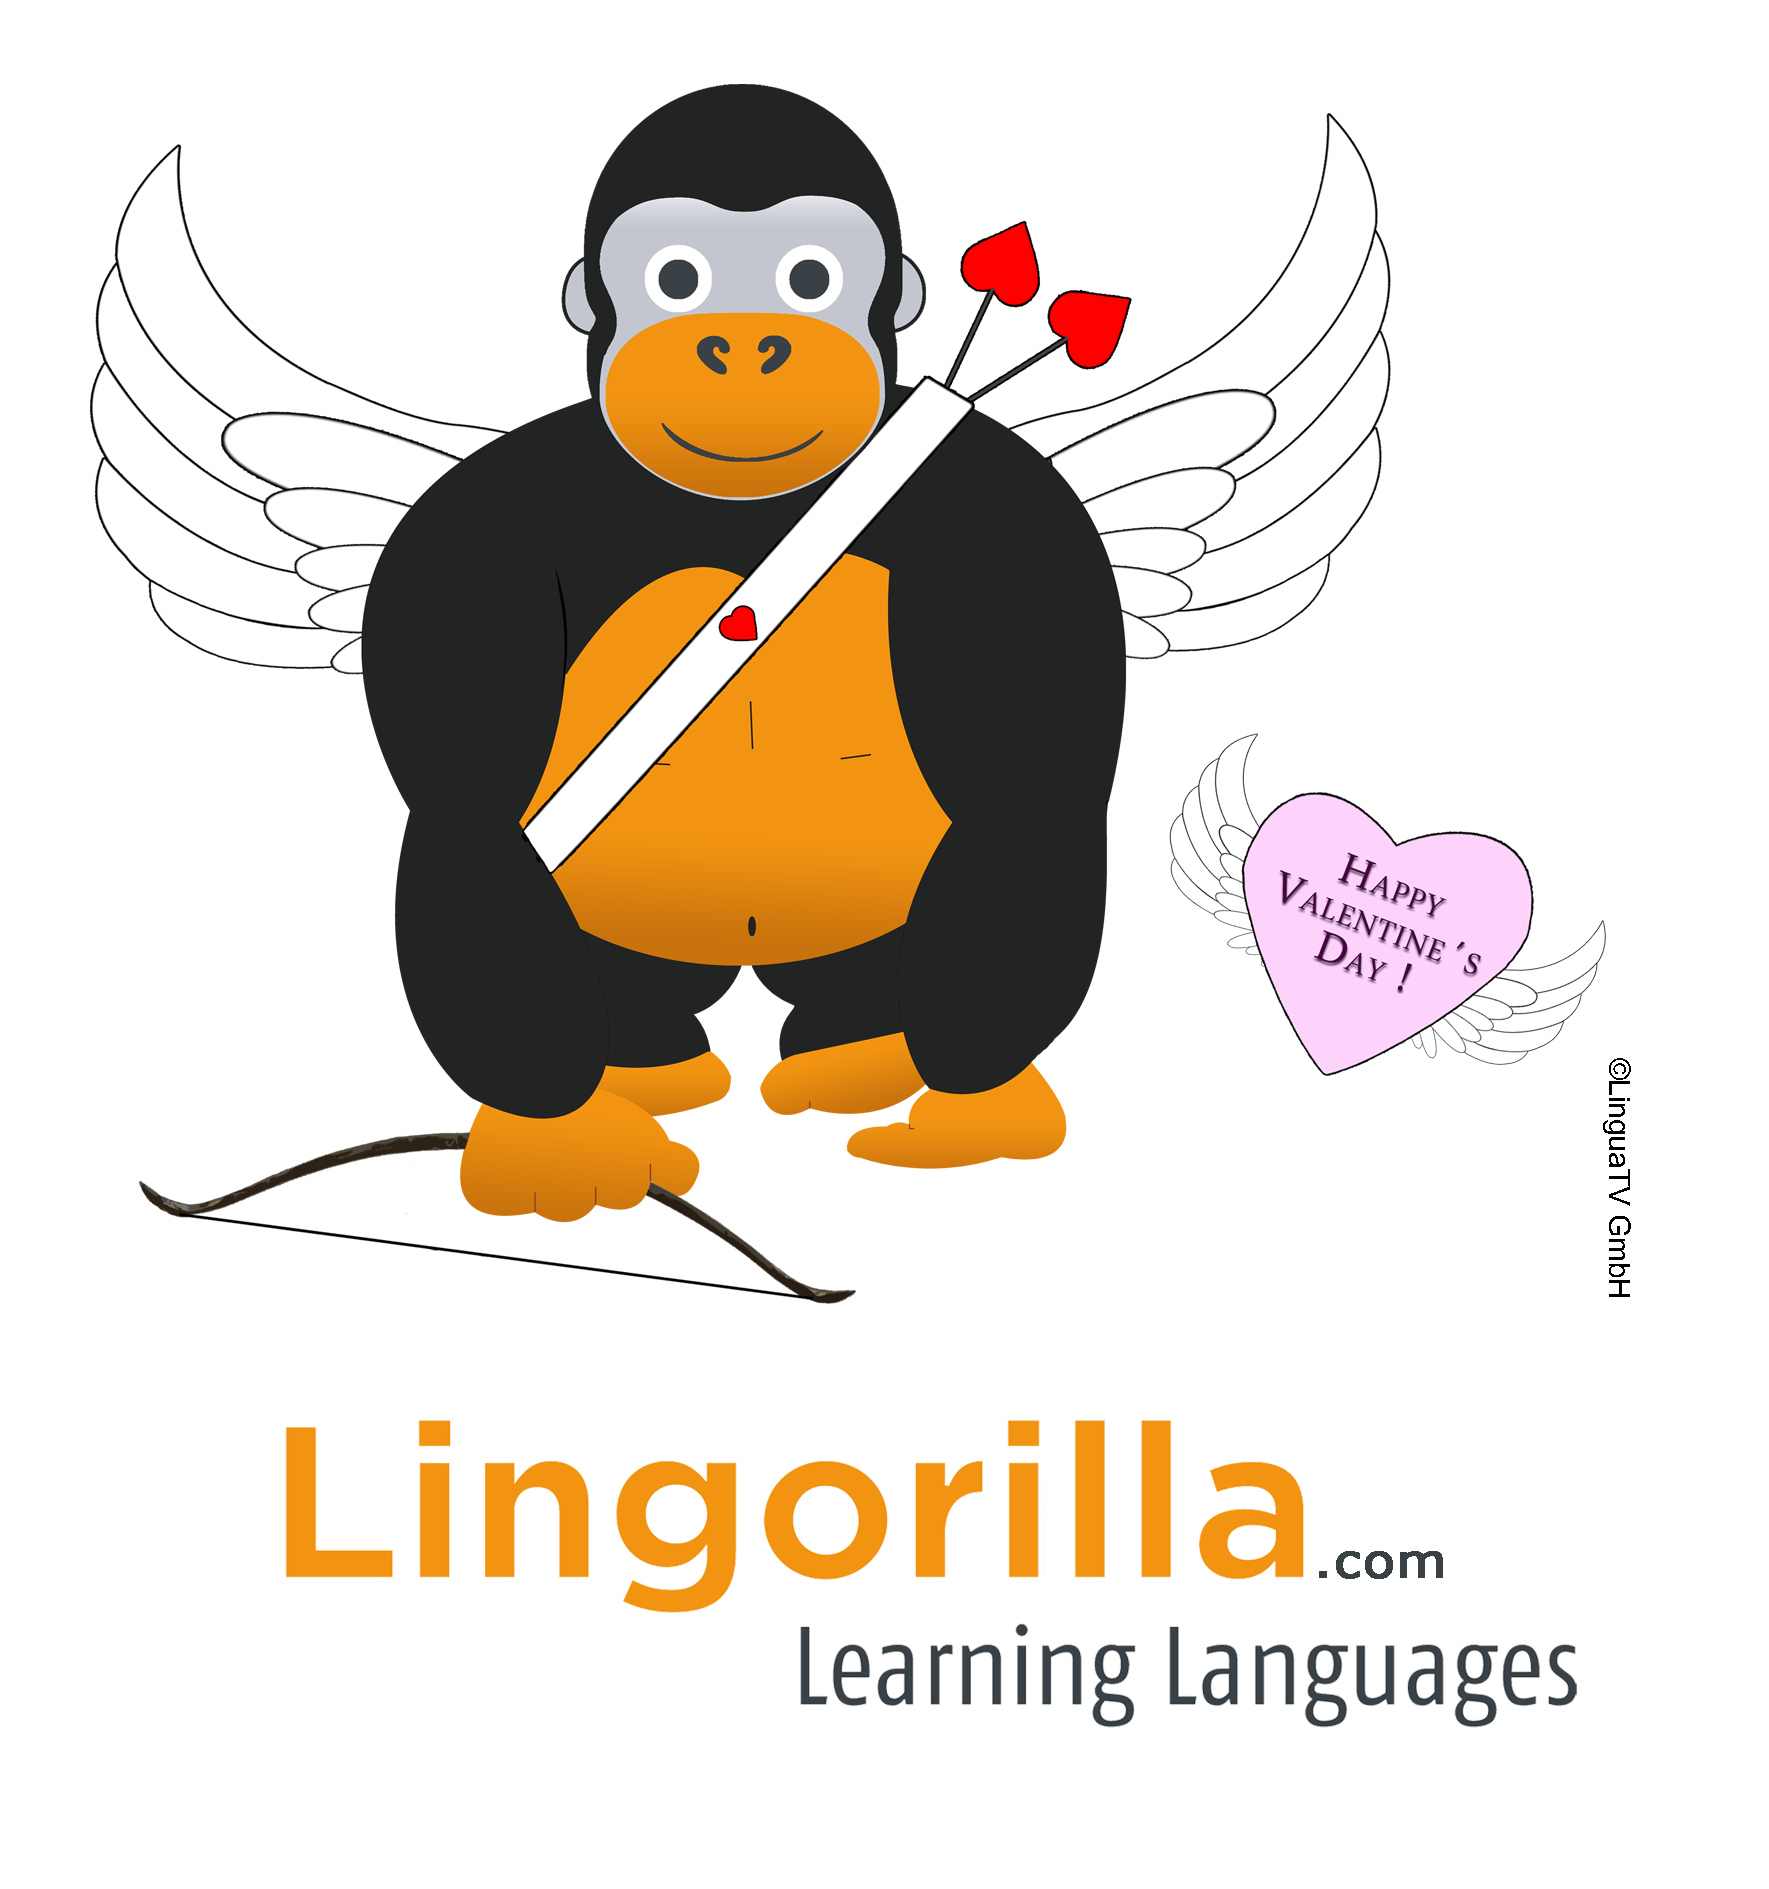 We Wish You A Happy Valentines Day And Lots Of Love Learn The Language Of Your Partner And Friends With Www Lingorilla Com Save 20 With Coupon Code